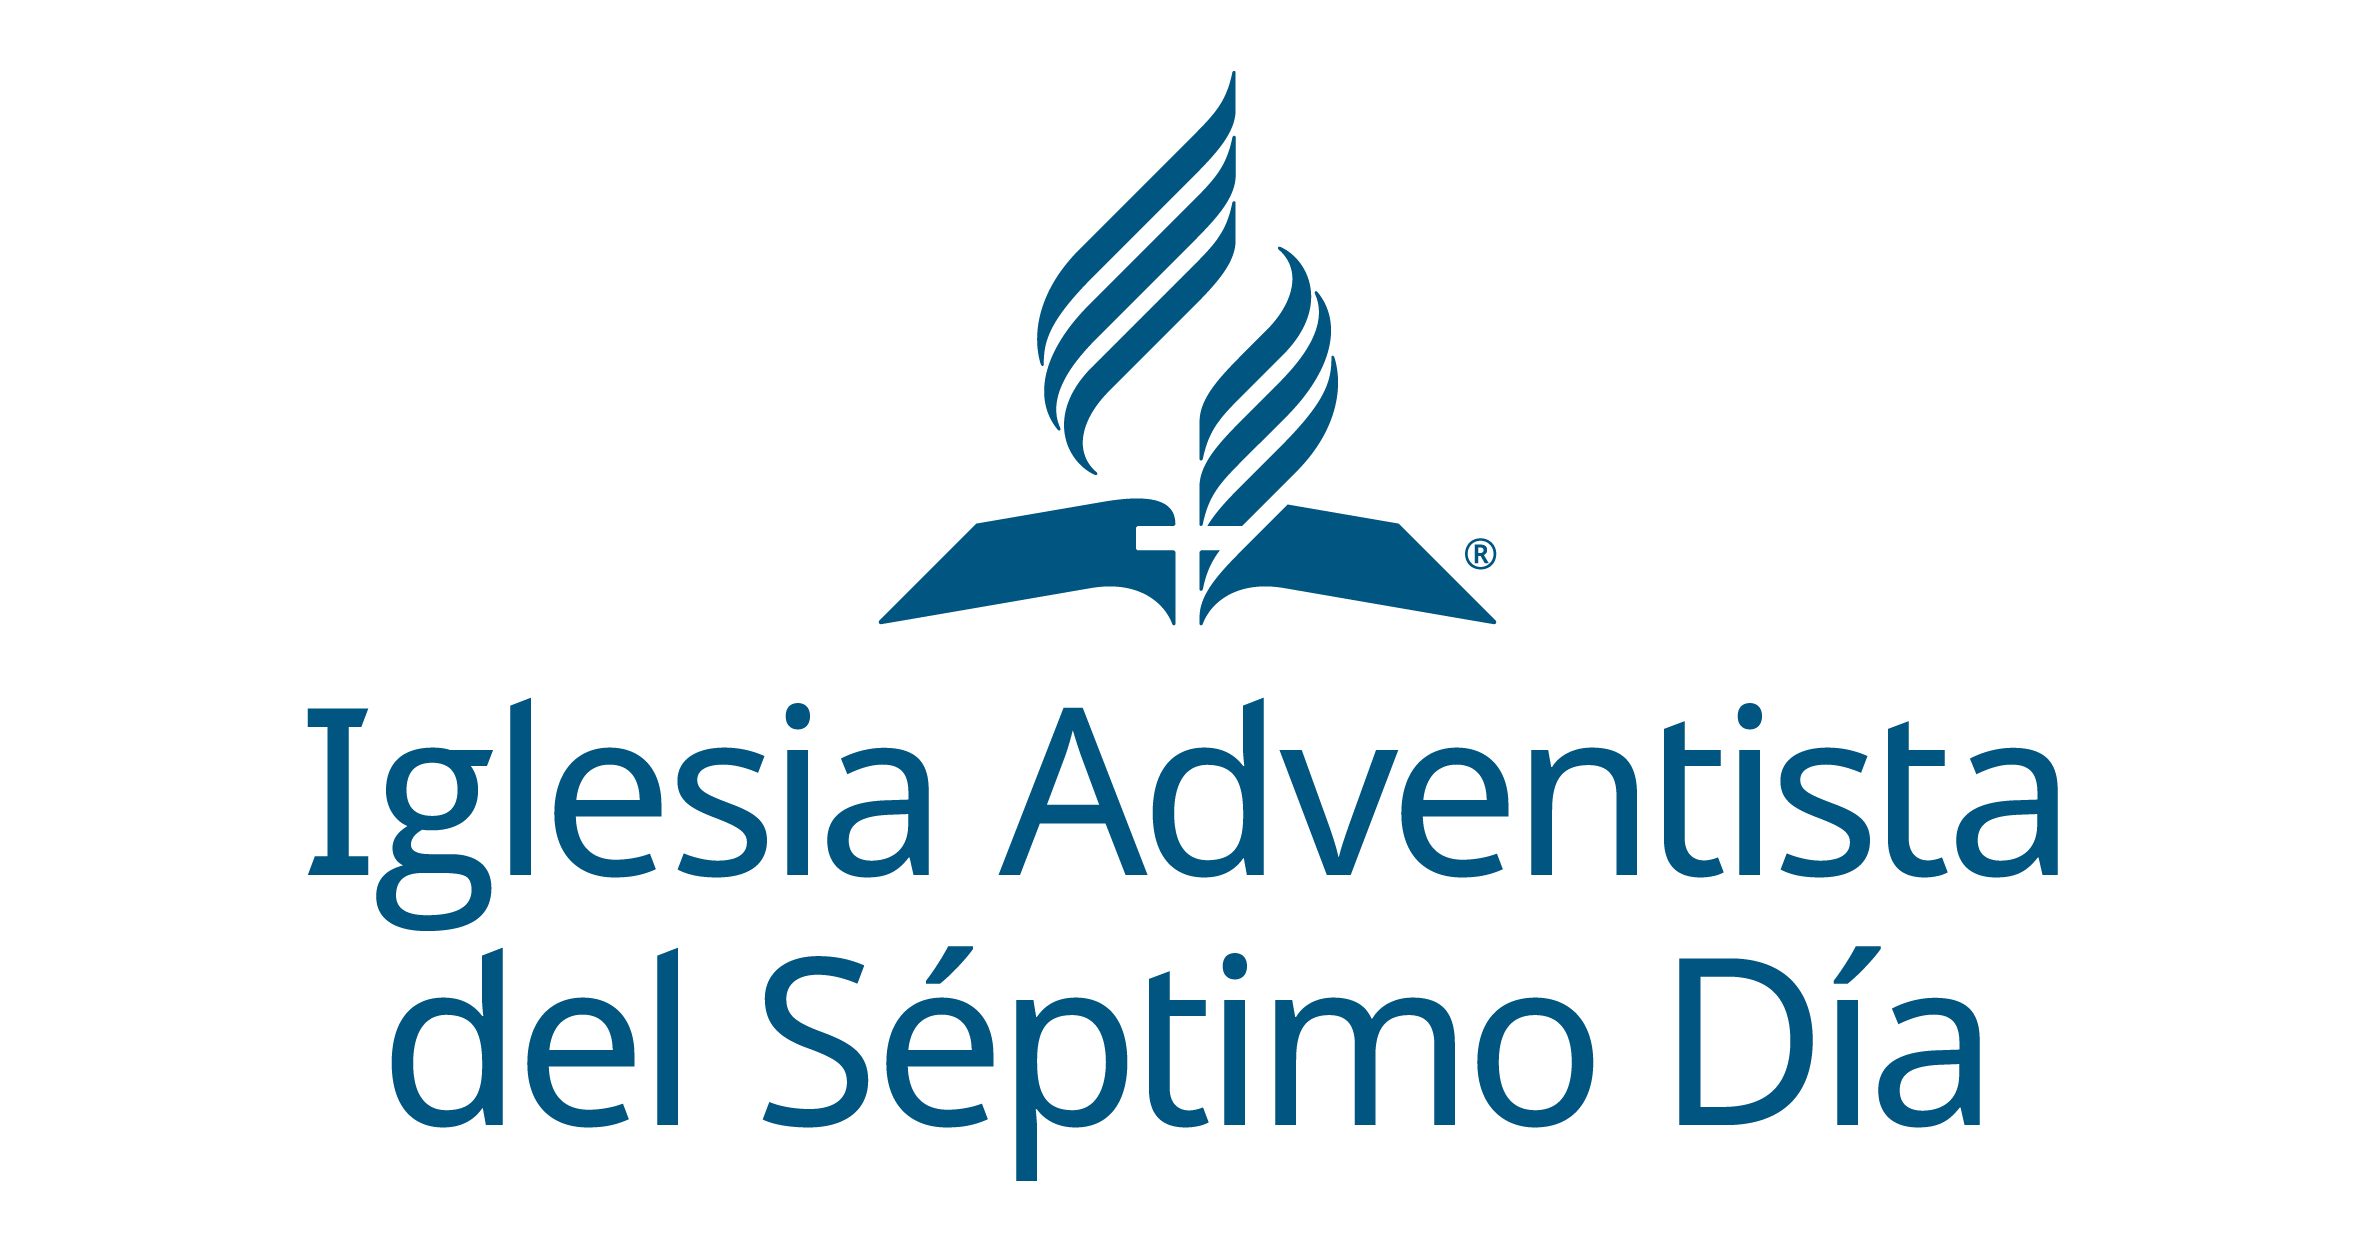 Church logos png. File seventh day adventist